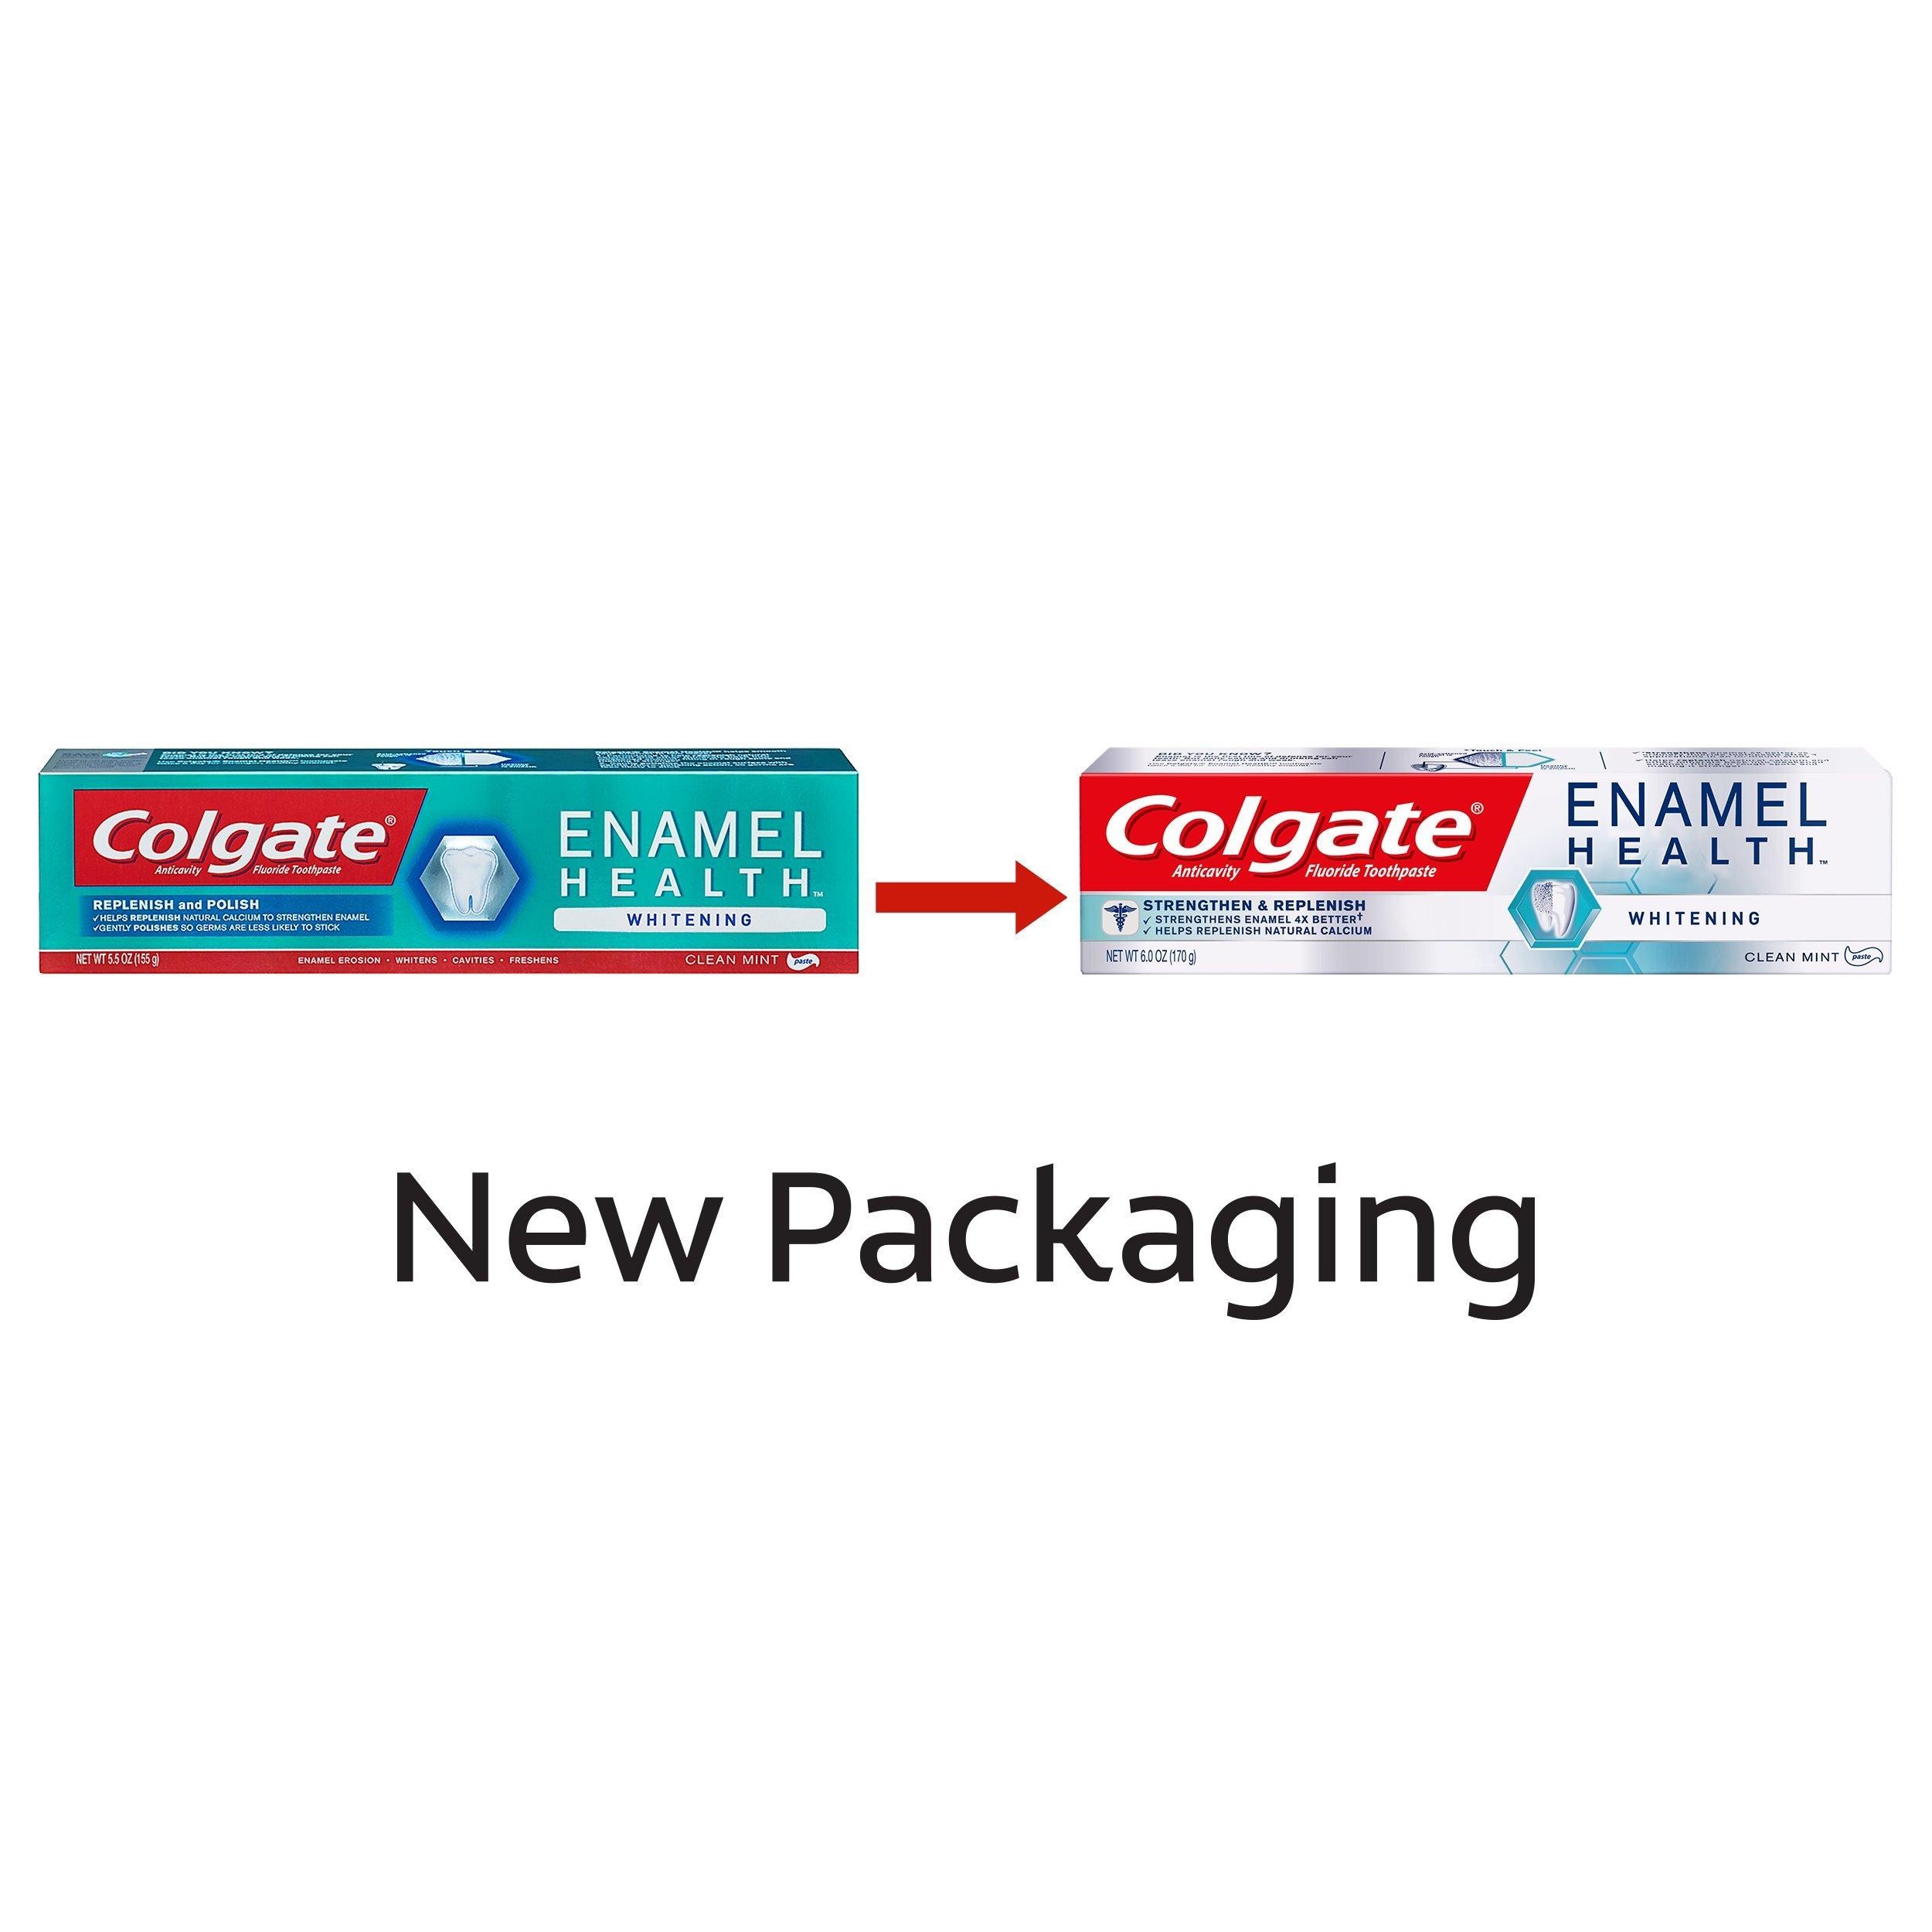 Colgate Enamel Health Whitening Toothpaste - 5.5 ounce (3 Pack) by Colgate (Image #4)